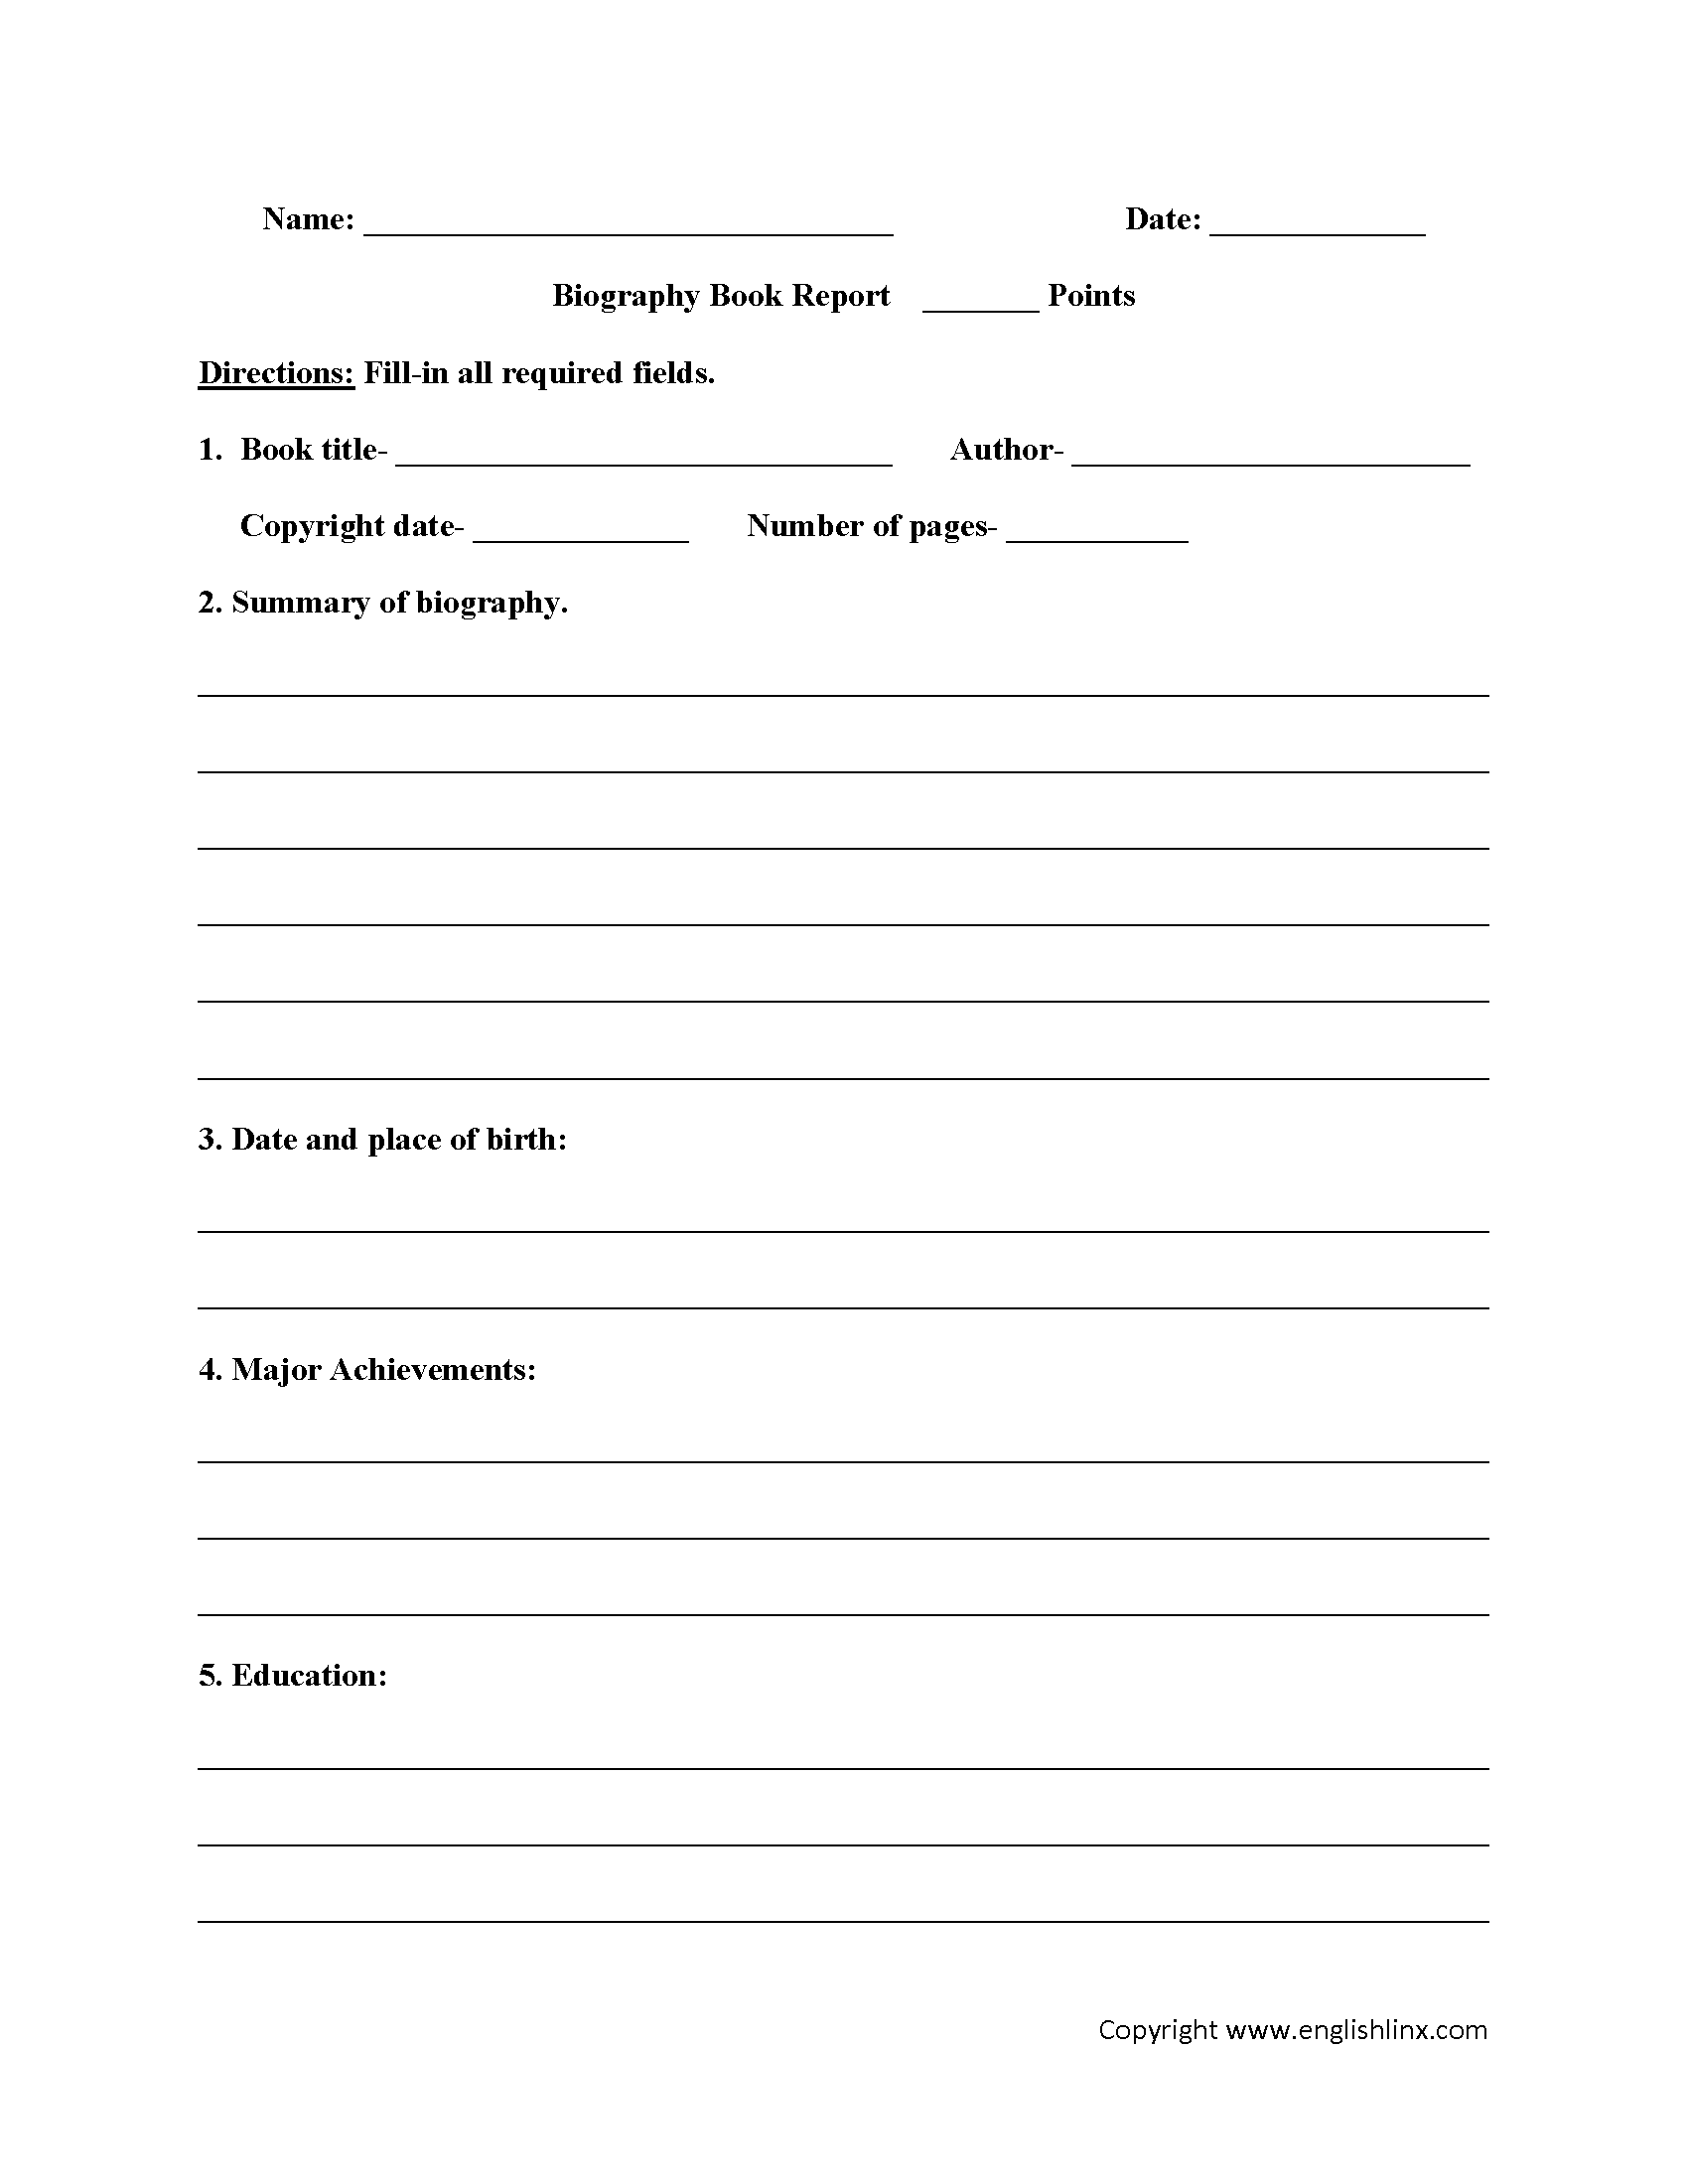 Worksheets 10th Grade Printable Worksheets englishlinx com book report worksheets worksheets